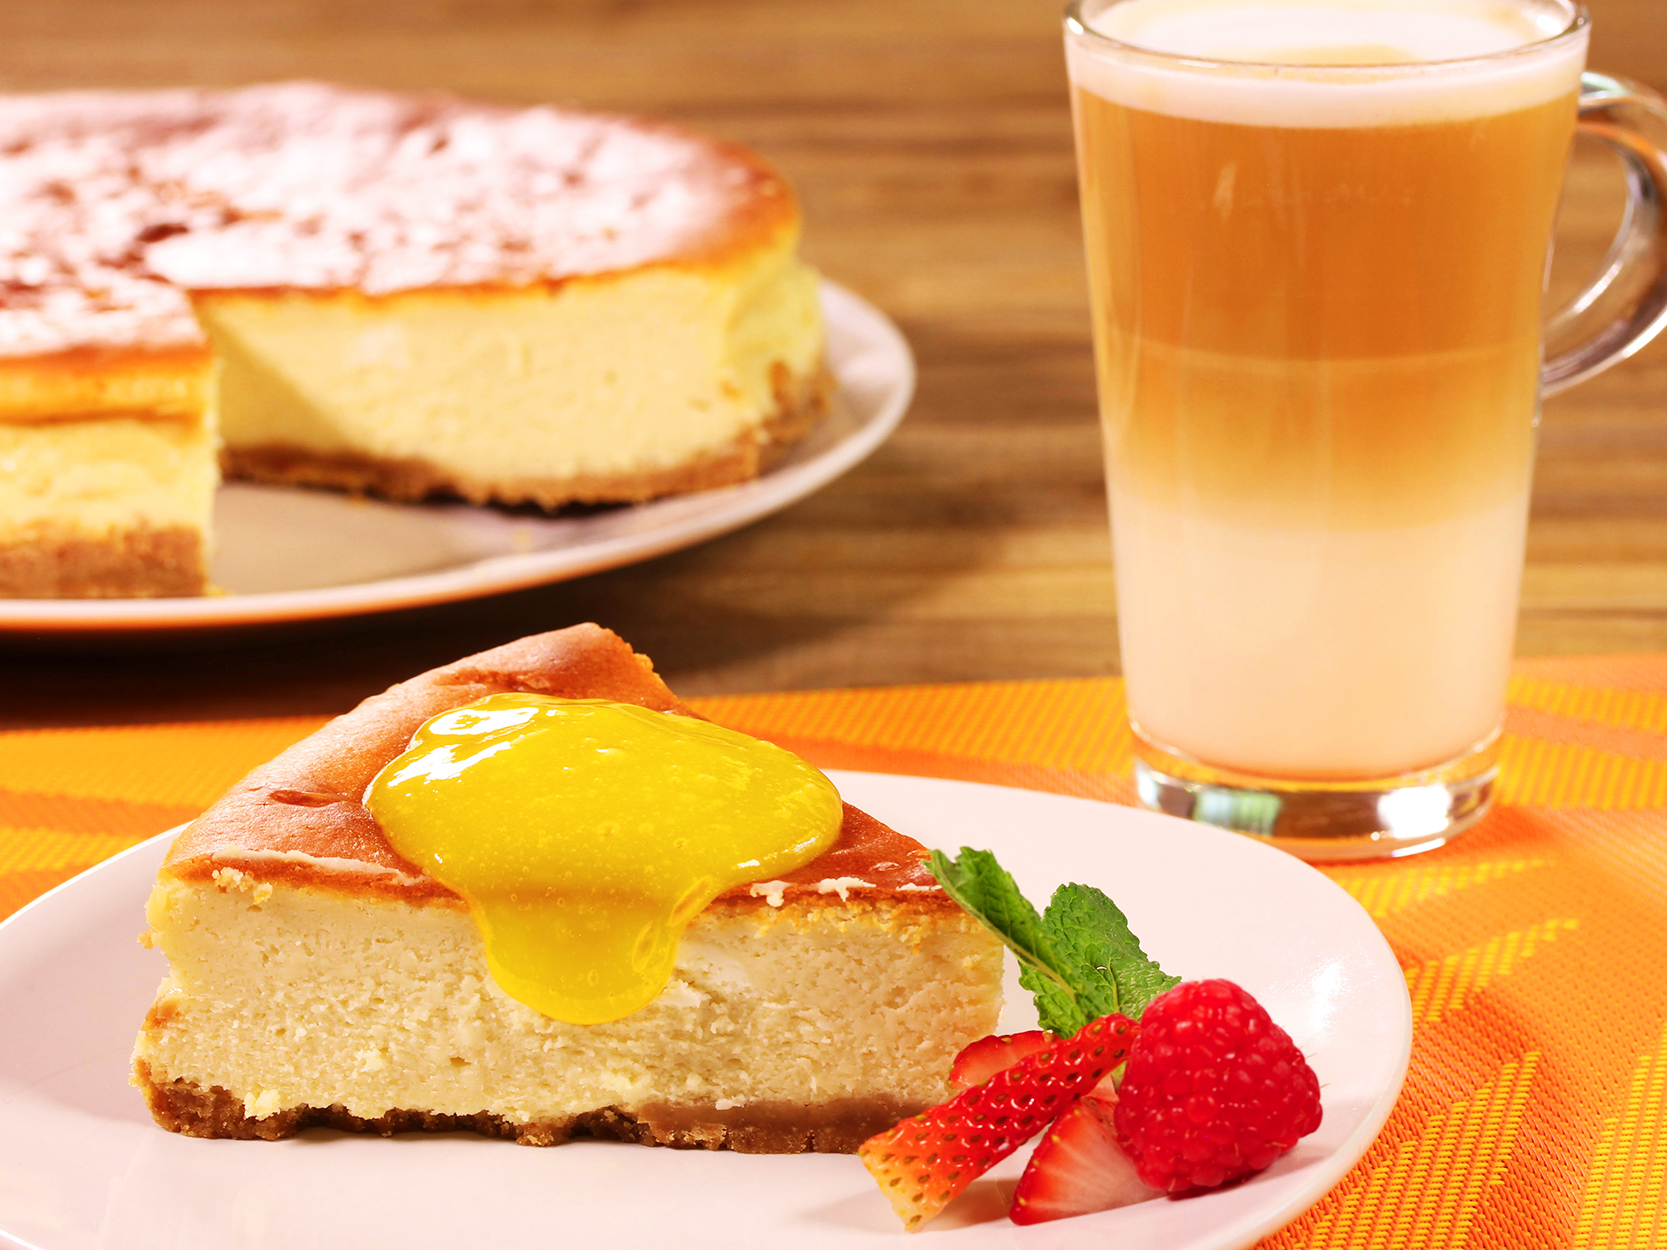 CHEESE CAKE CON MANGO